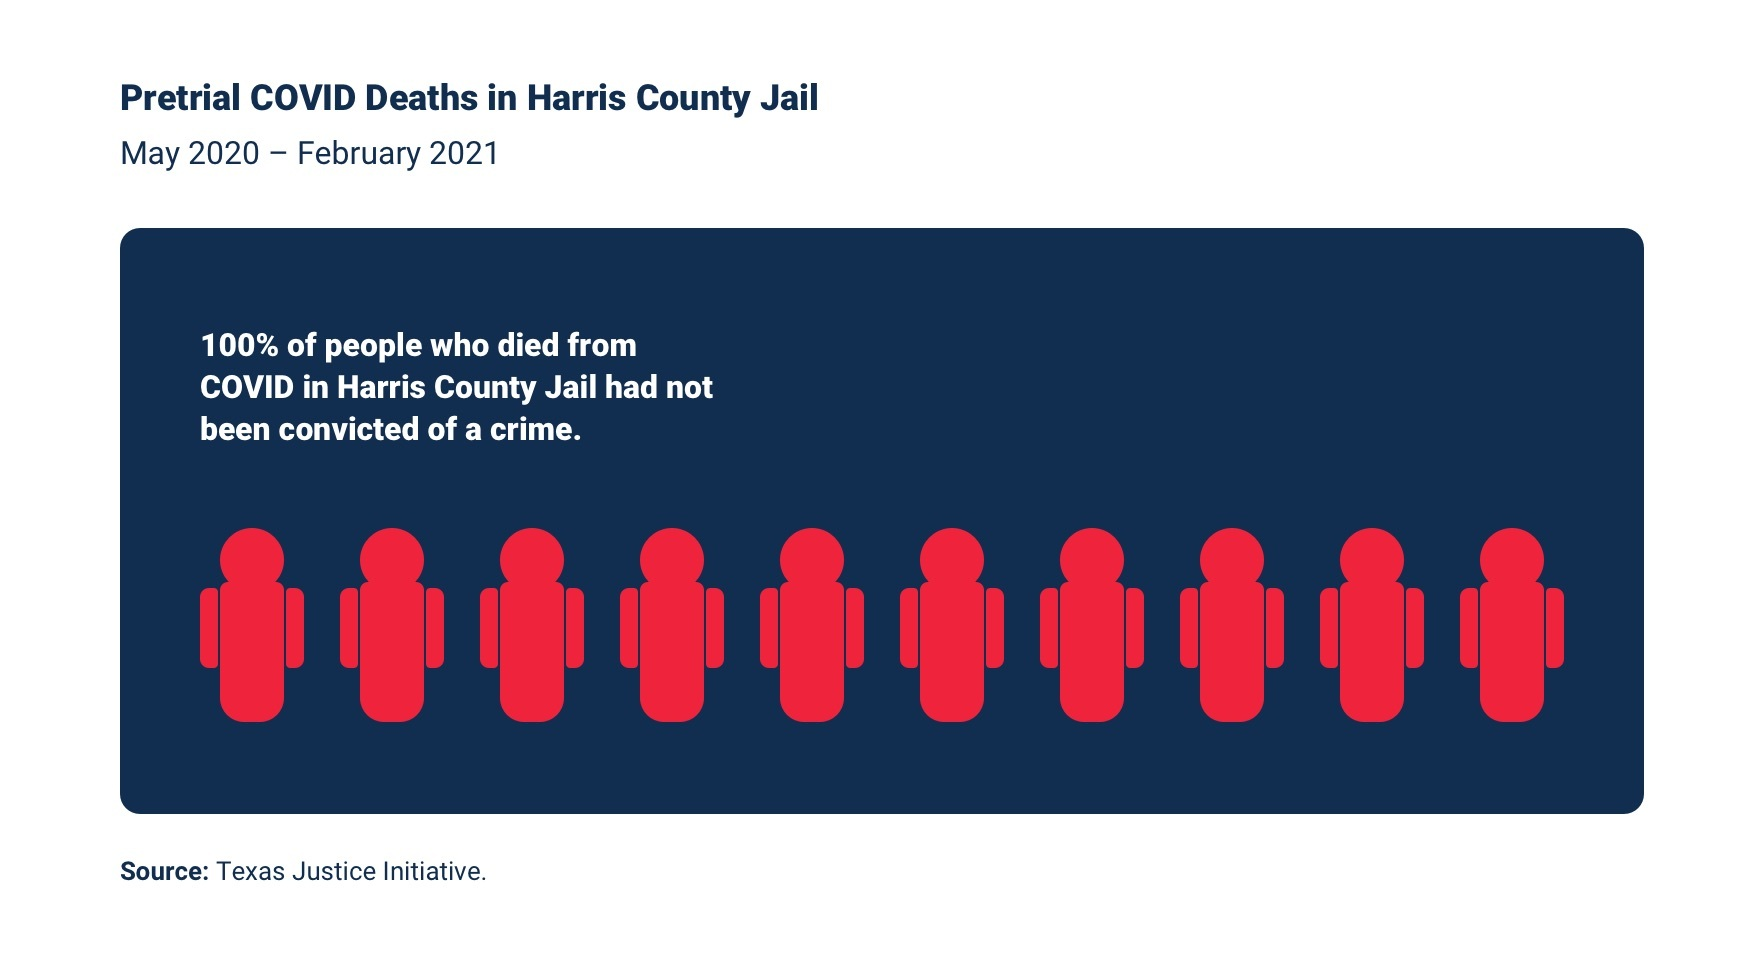 100% of people who died from COVID in Harris County Jail had not been convicted of a crime.